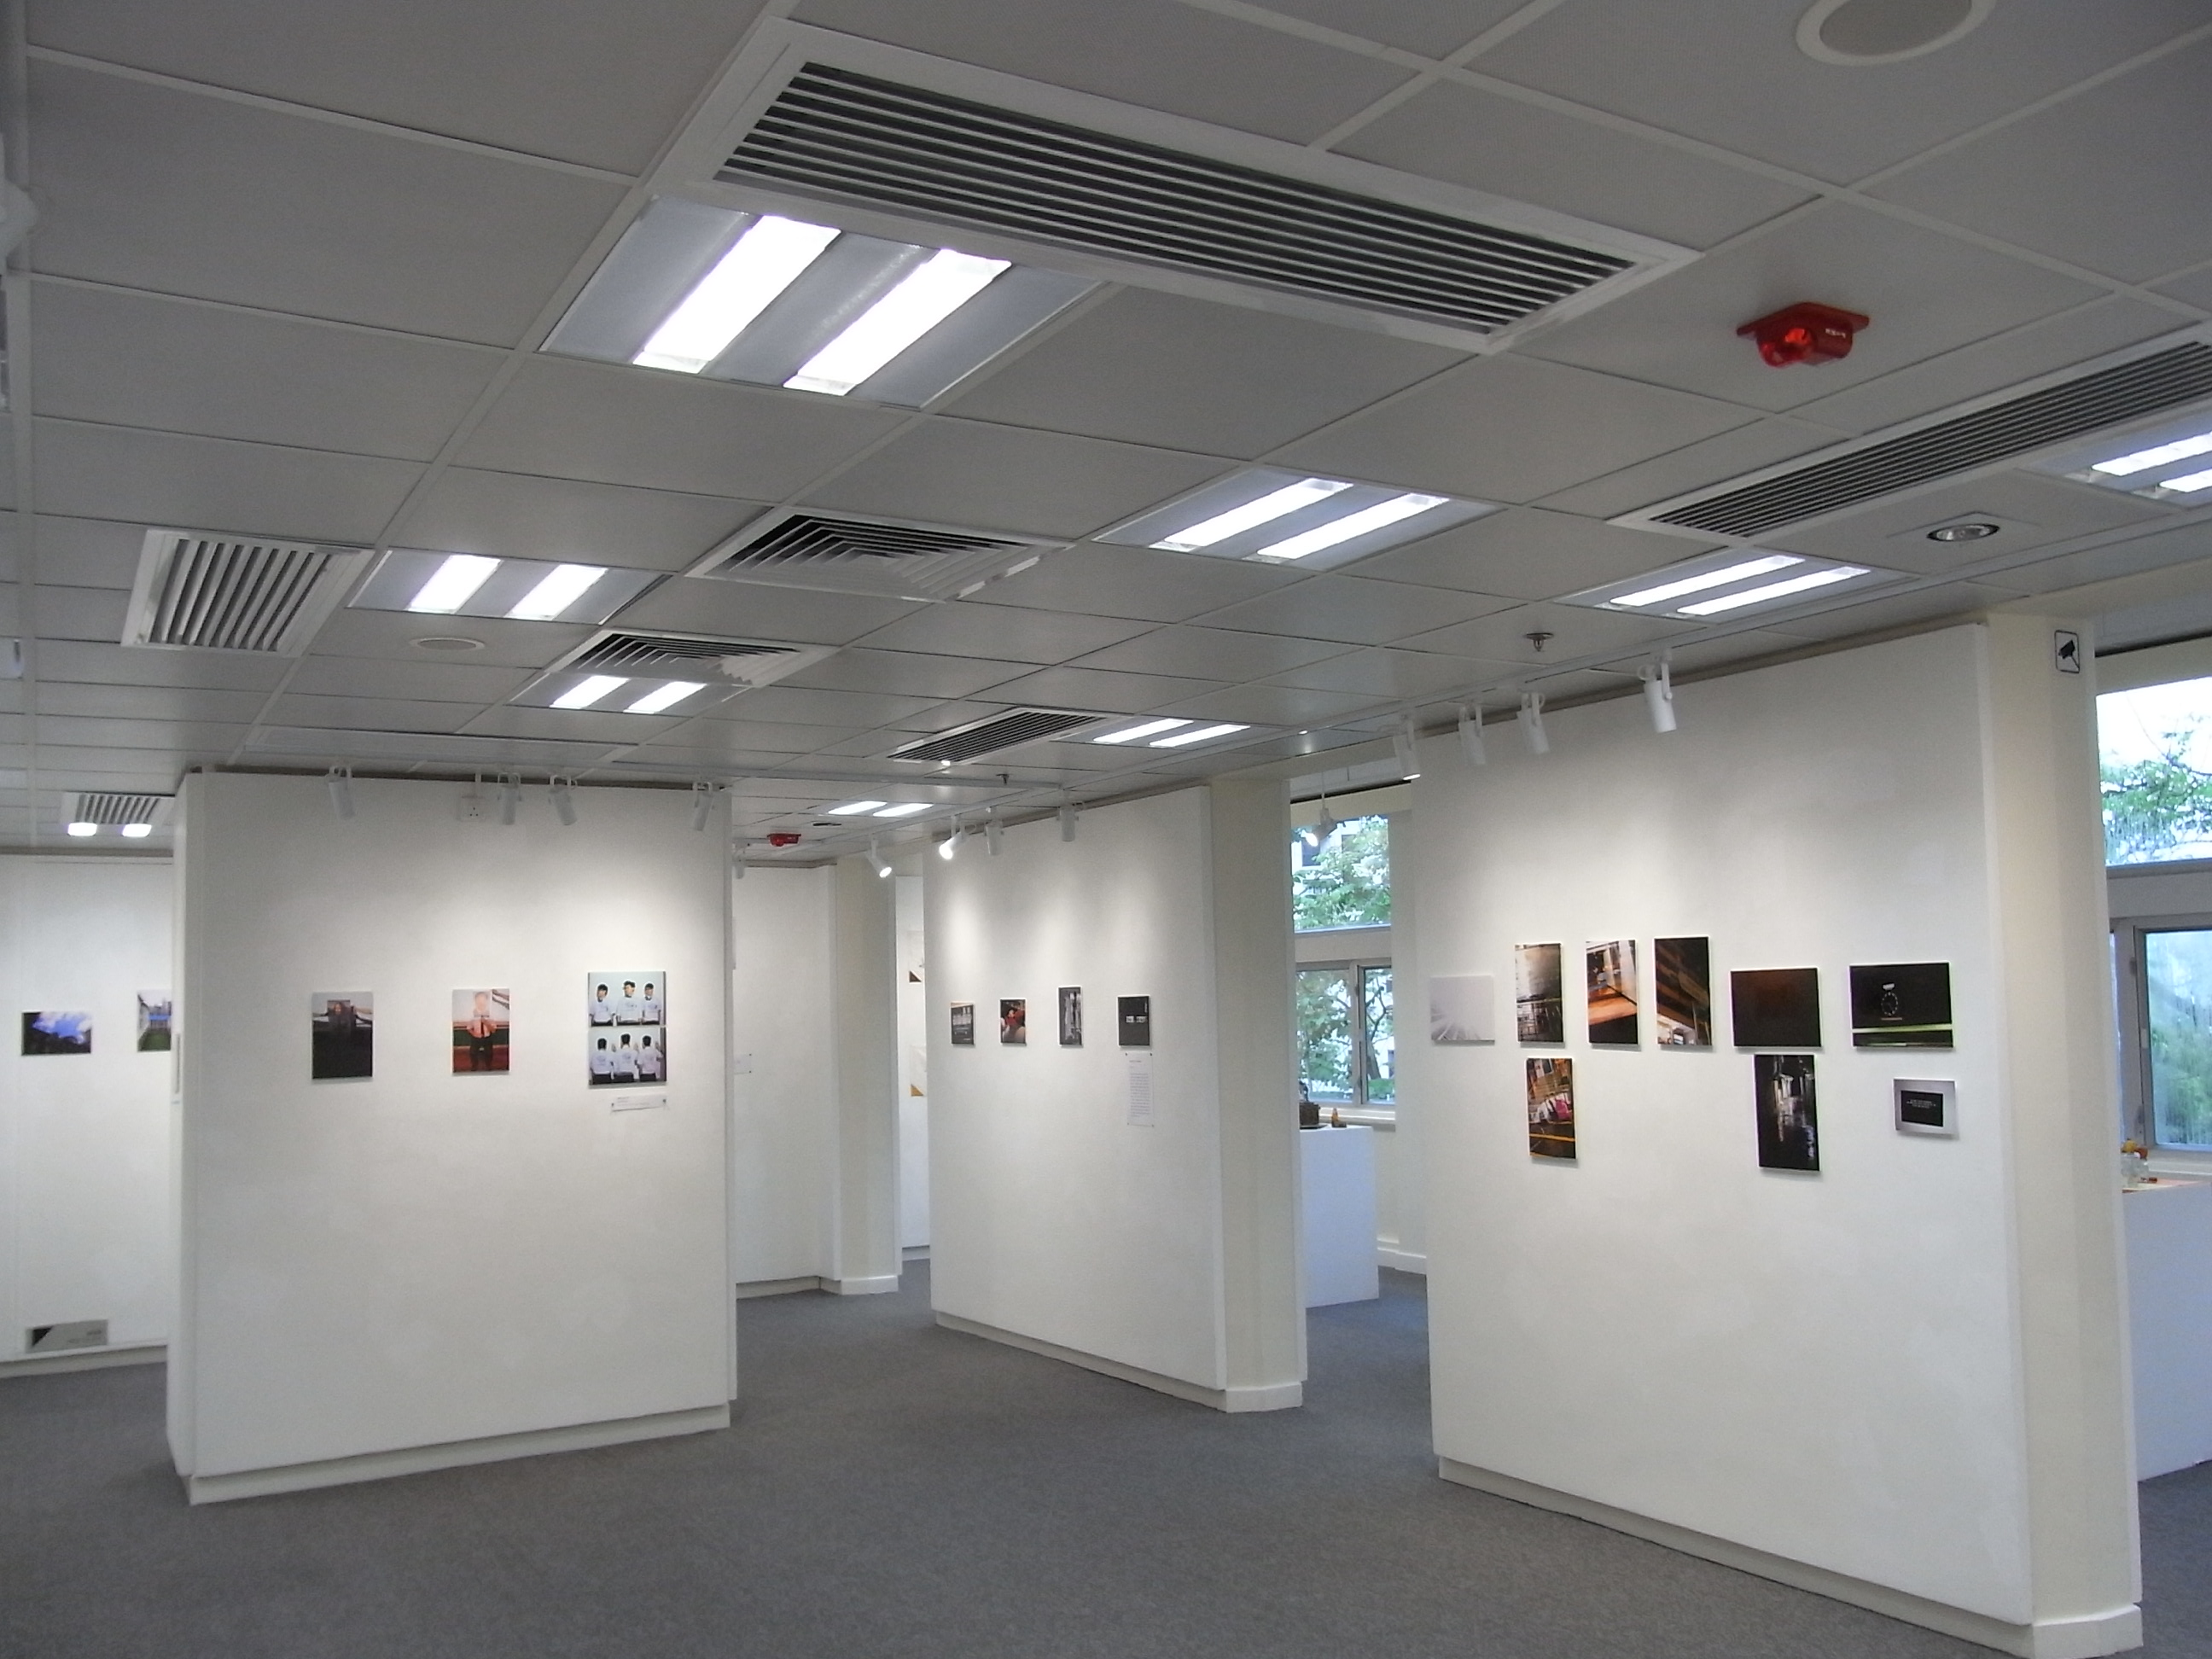 D Max Exhibition Hall : File hk mid levels a kennedy road 香港視覺藝術中心 hong kong